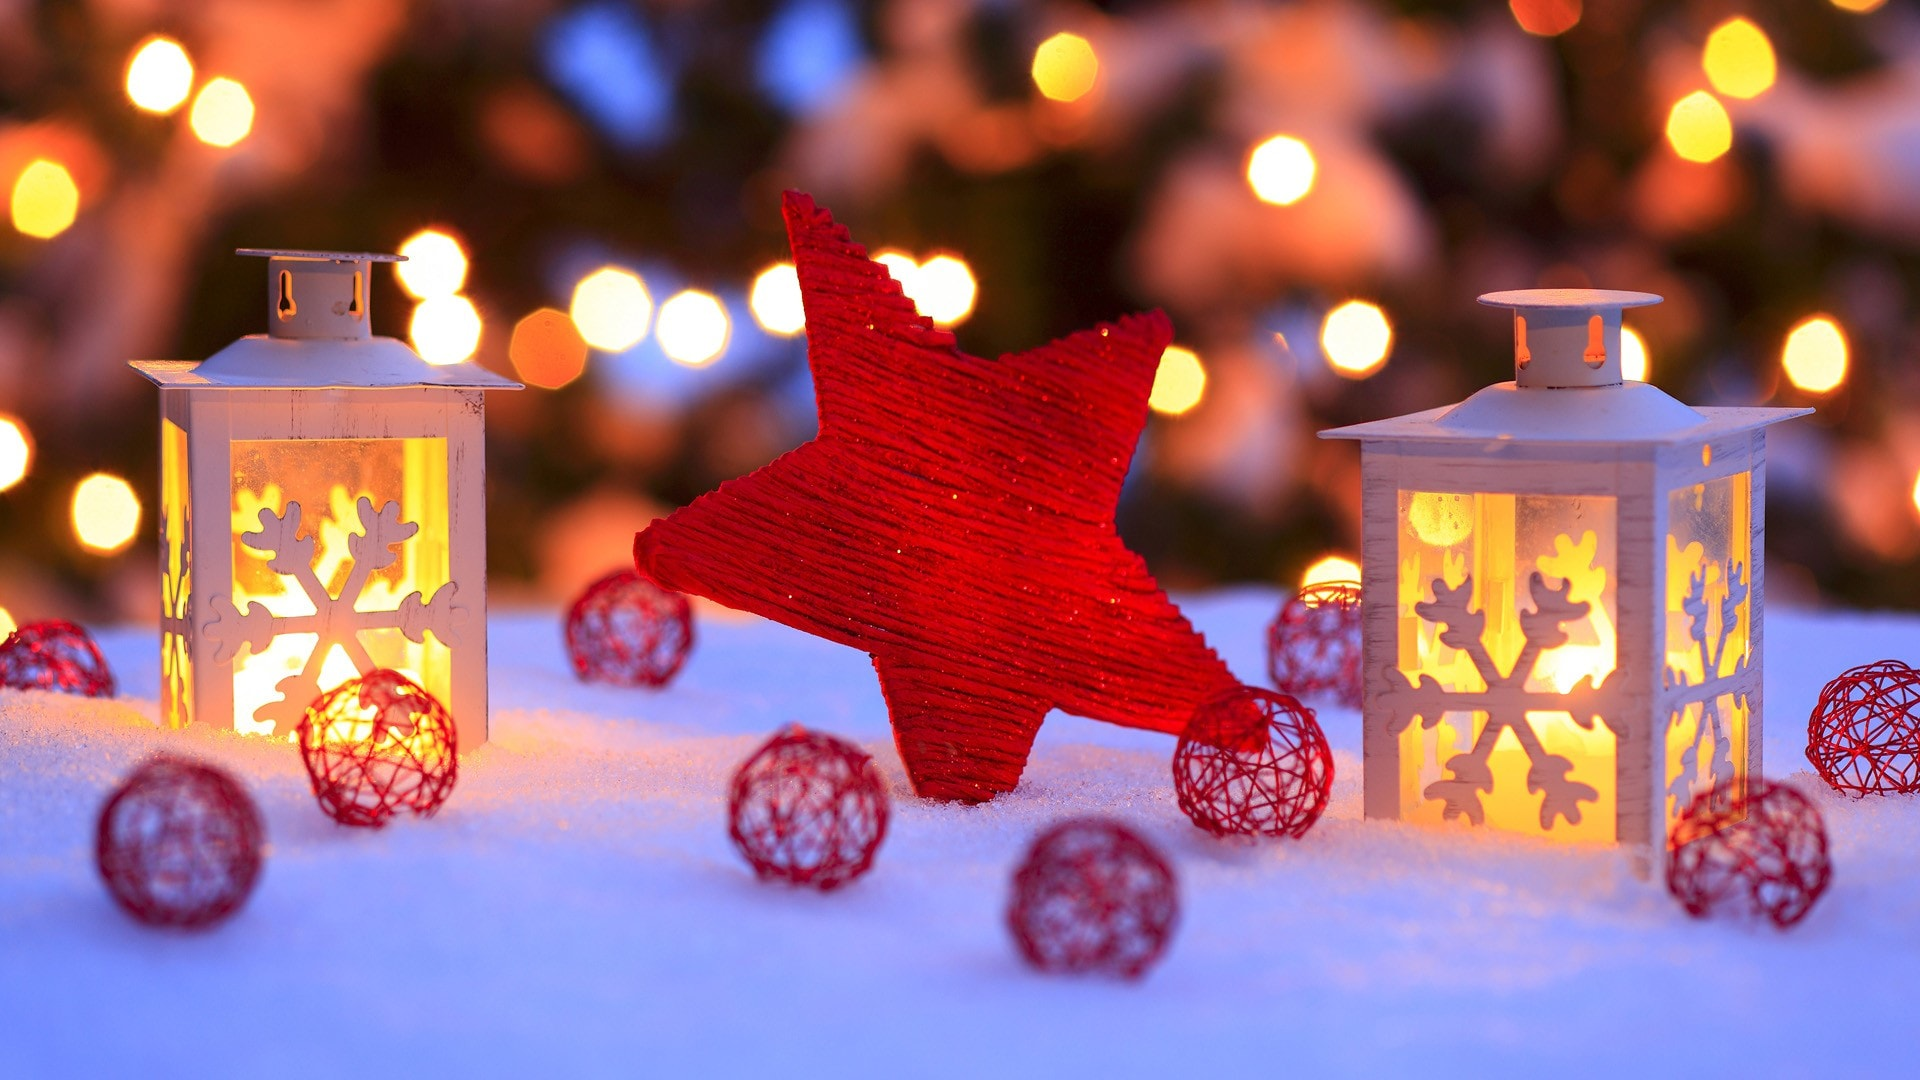 Christmas Hd Wallpapers 7wallpapers Net